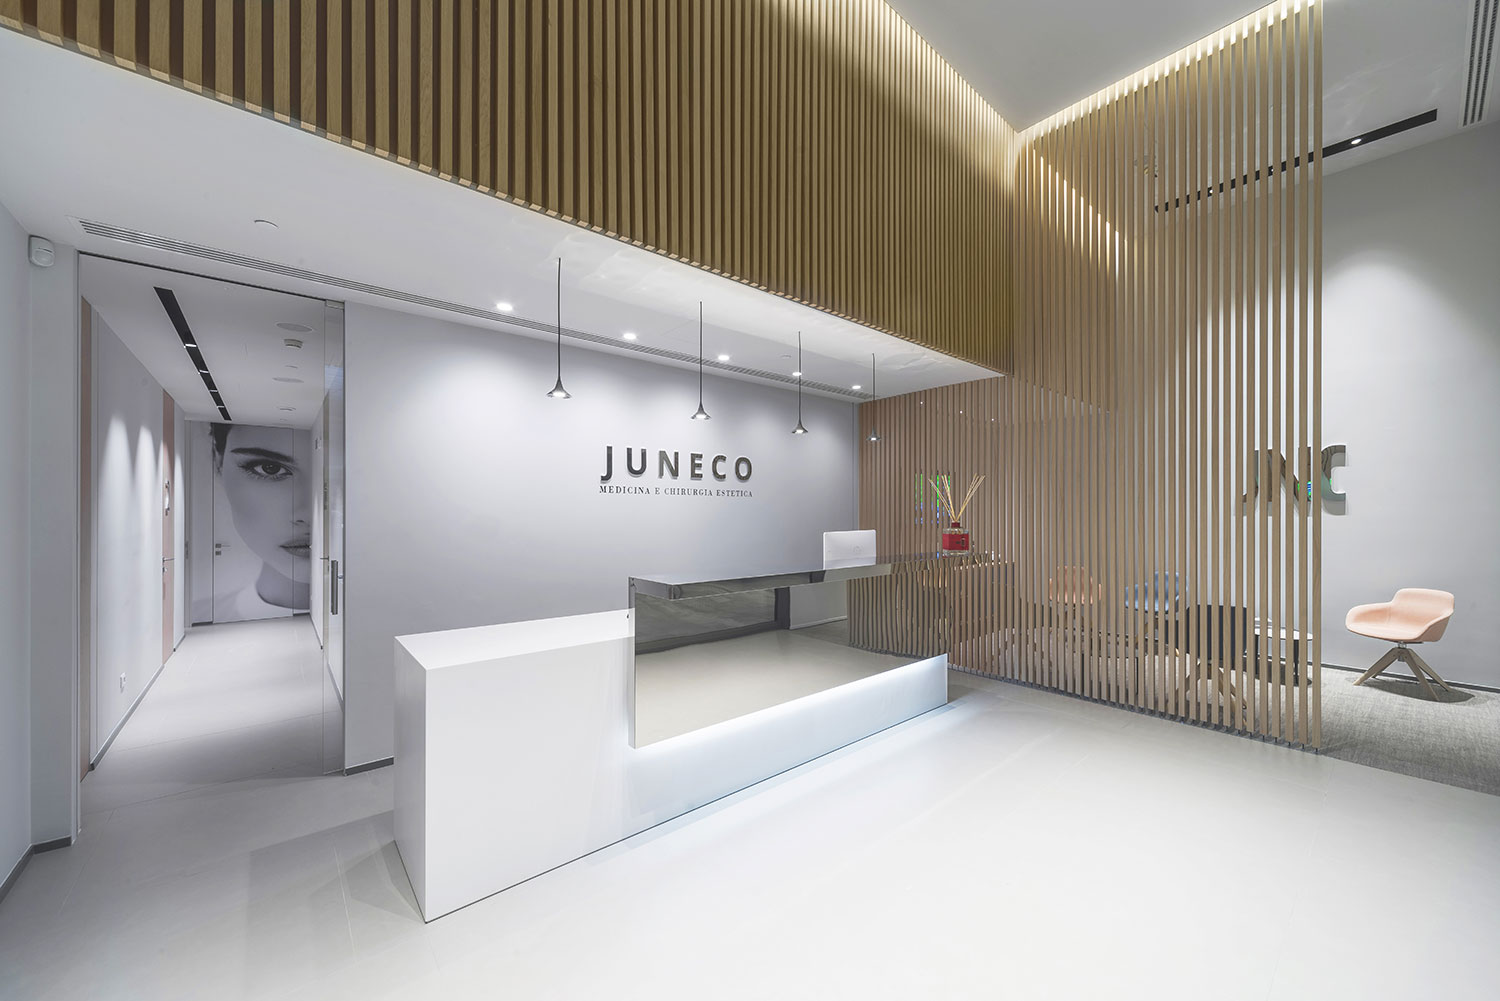 Juneco - Mantero Associati